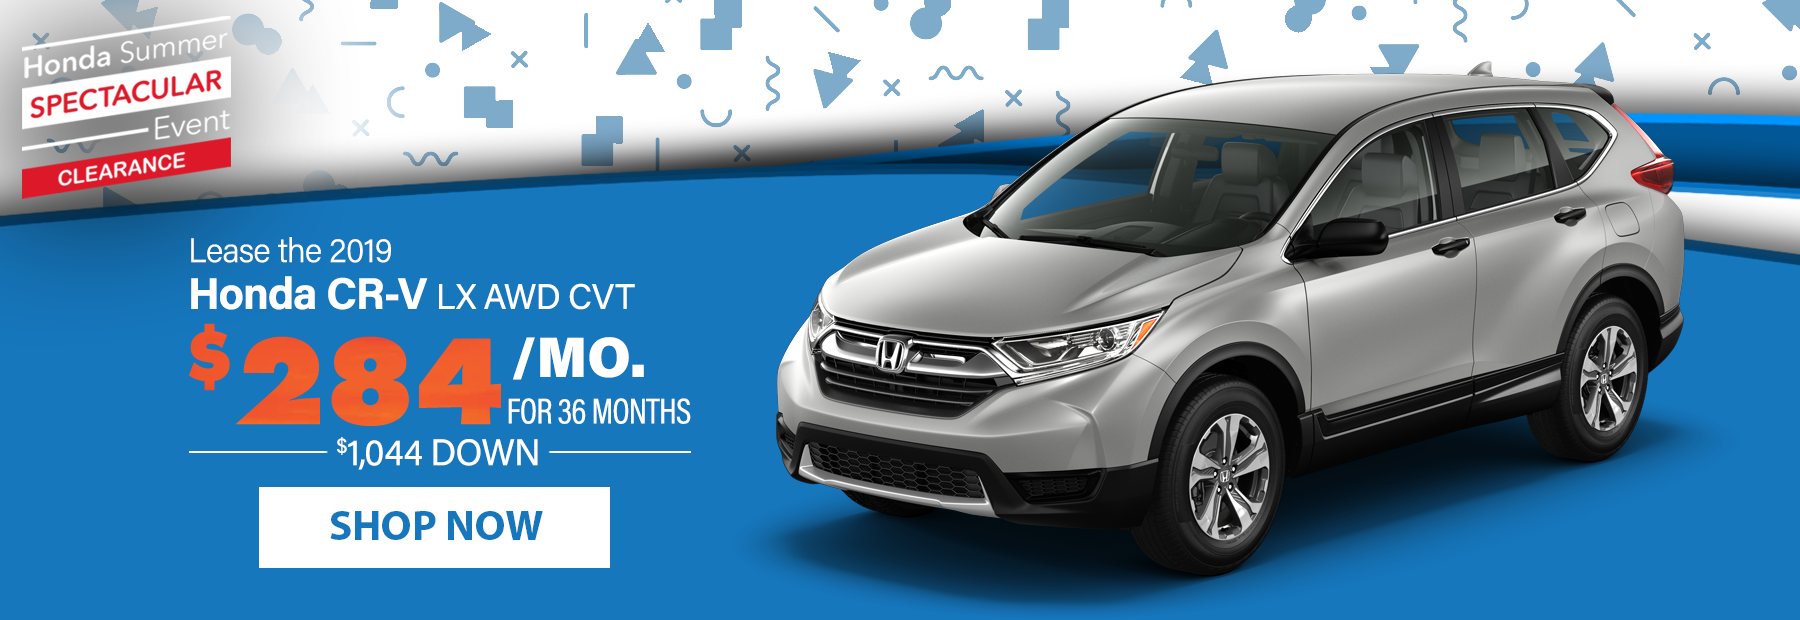 Honda Dealers Dayton Ohio >> Performance Honda New Honda Sales Service Route 4 In Fairfield Oh